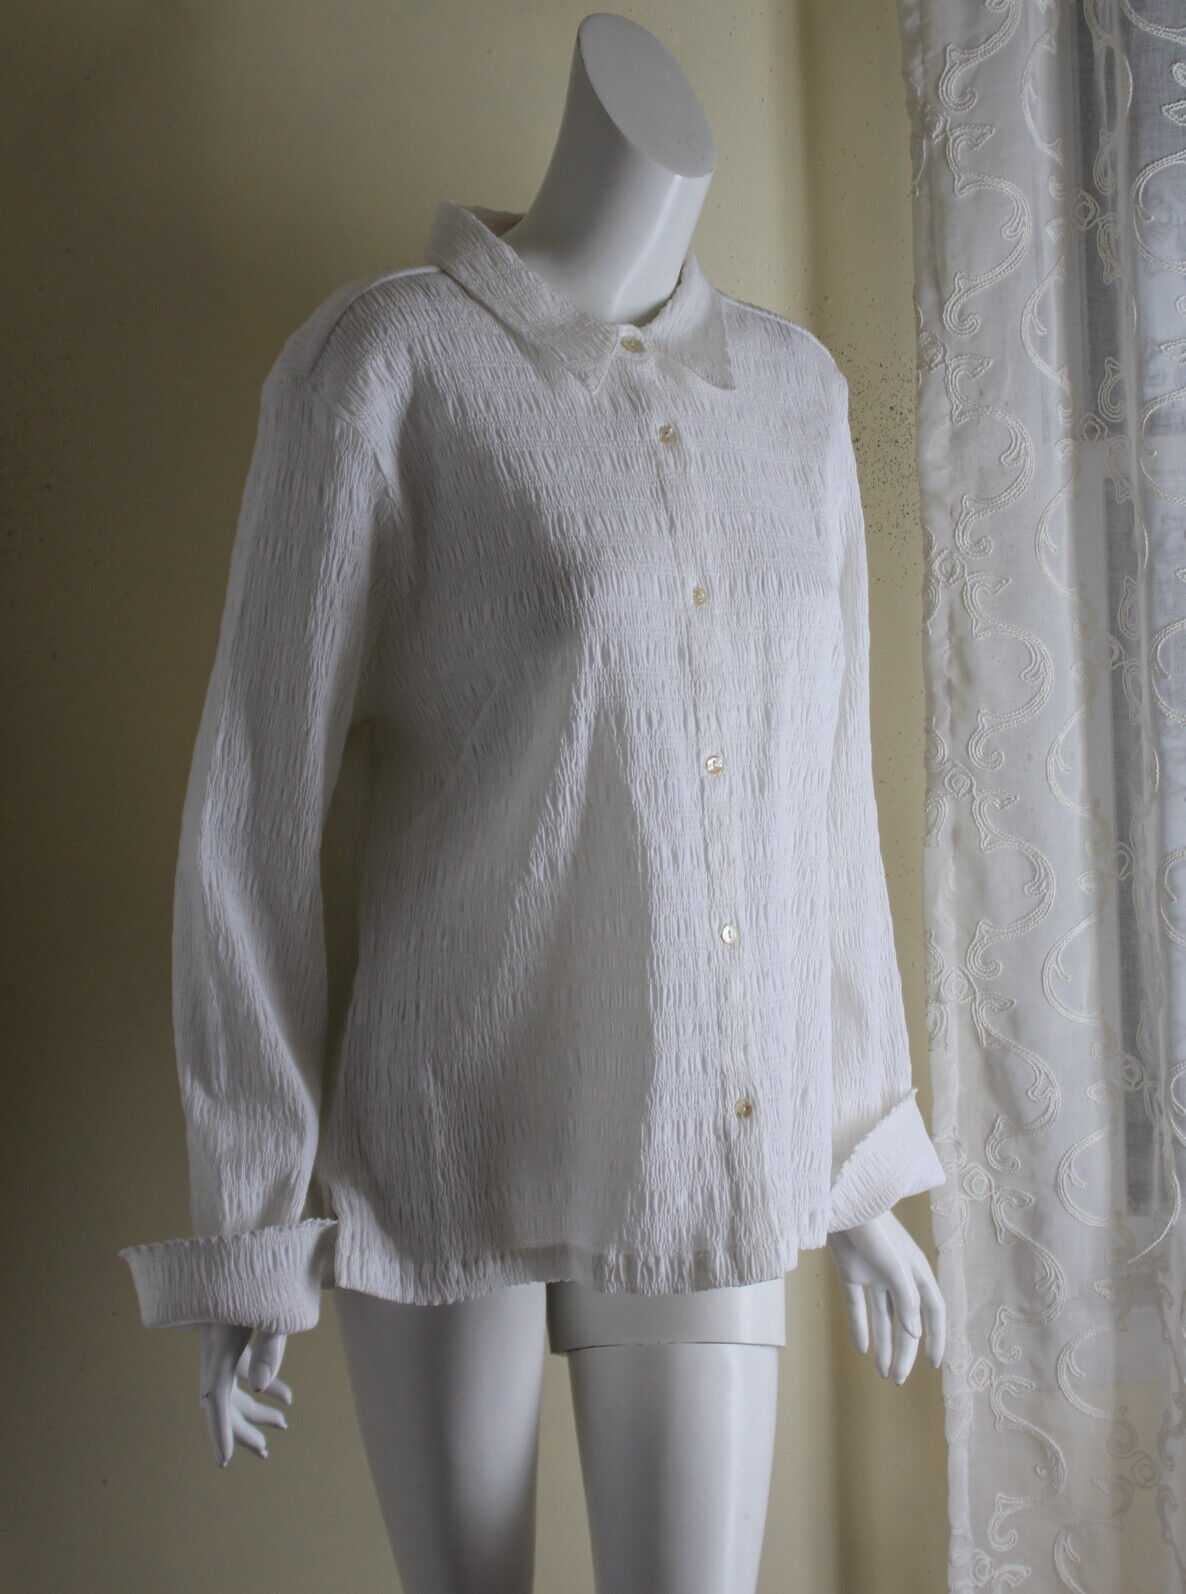 Hanna Andersson XL 16 14 Weiß Shirrot French Fiber Art Ruched Shirt Top Jacket